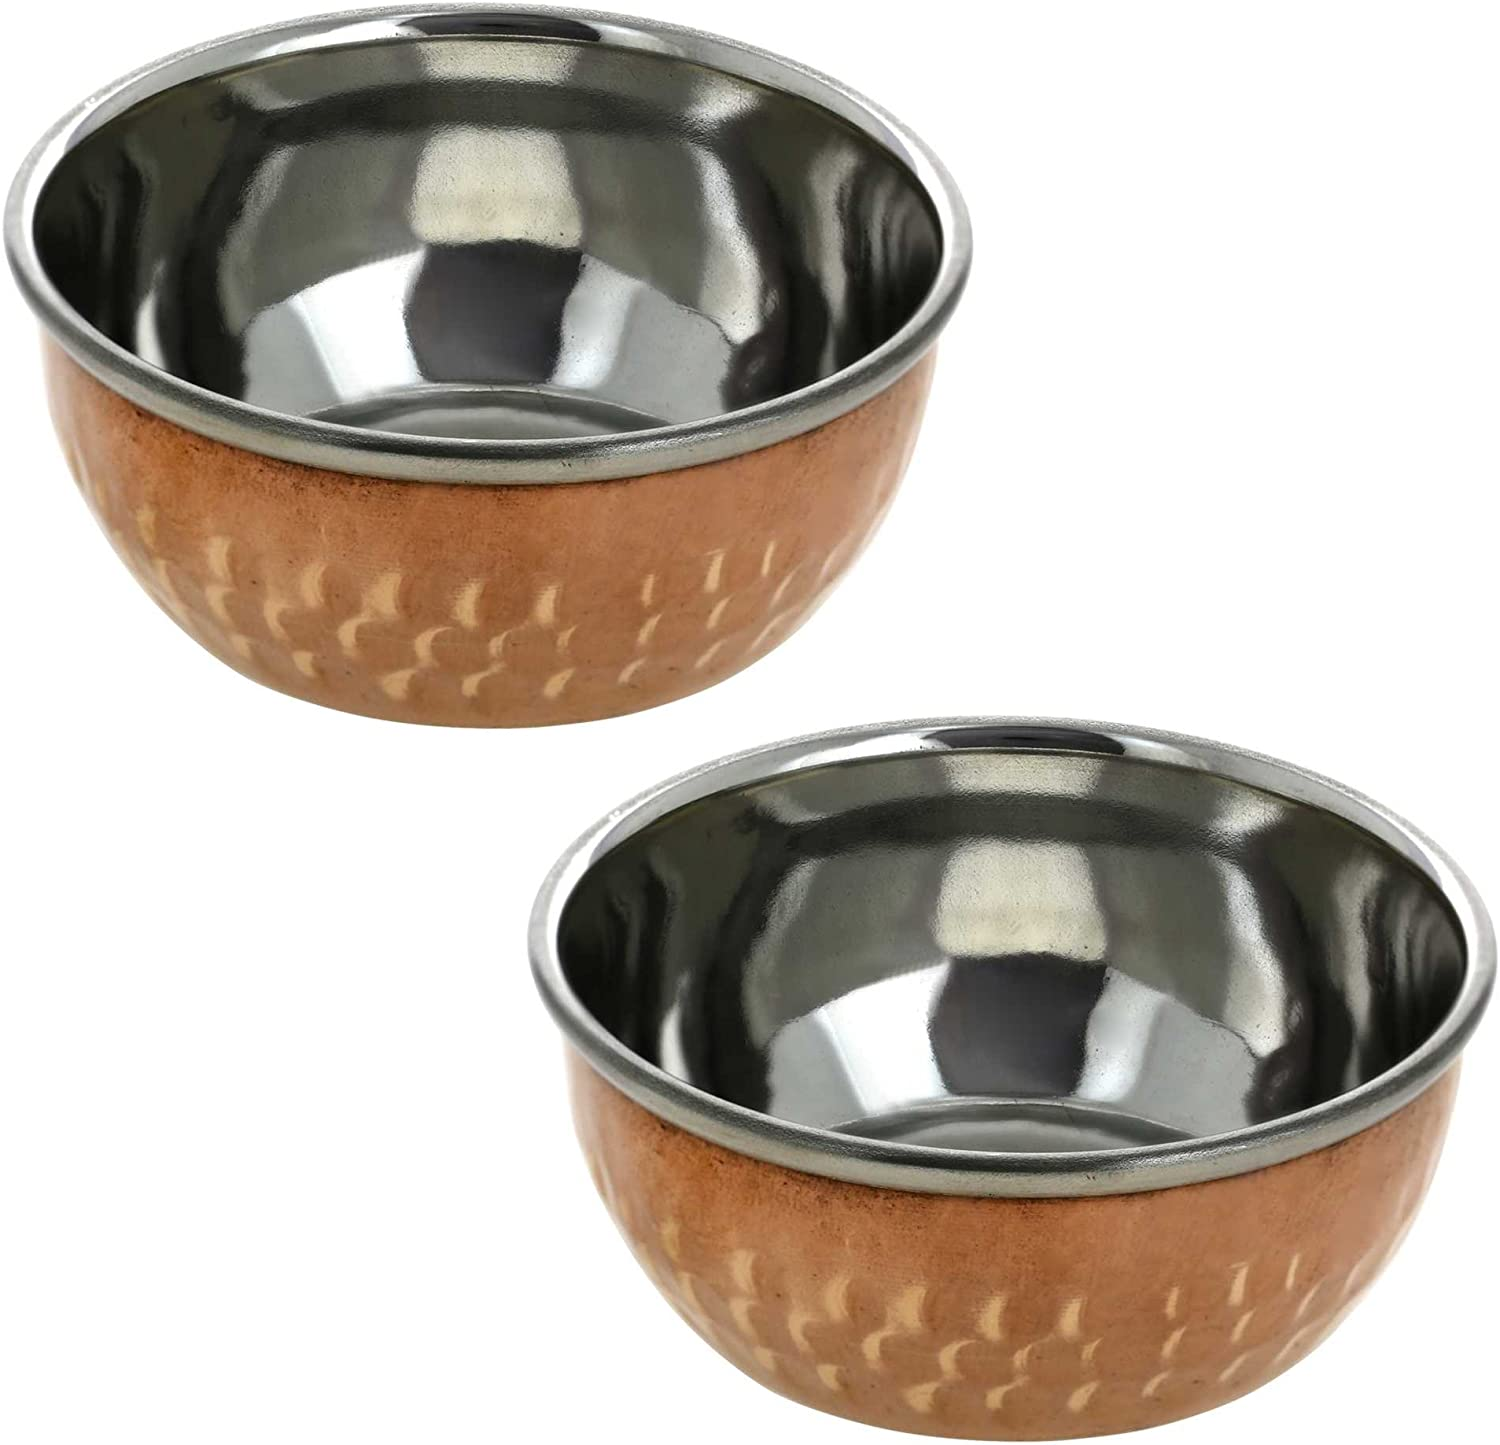 2 Handmade Indian Stainless Steel and Copper Serving Bowl Set - Unique Traditional Home Kitchen Gifts